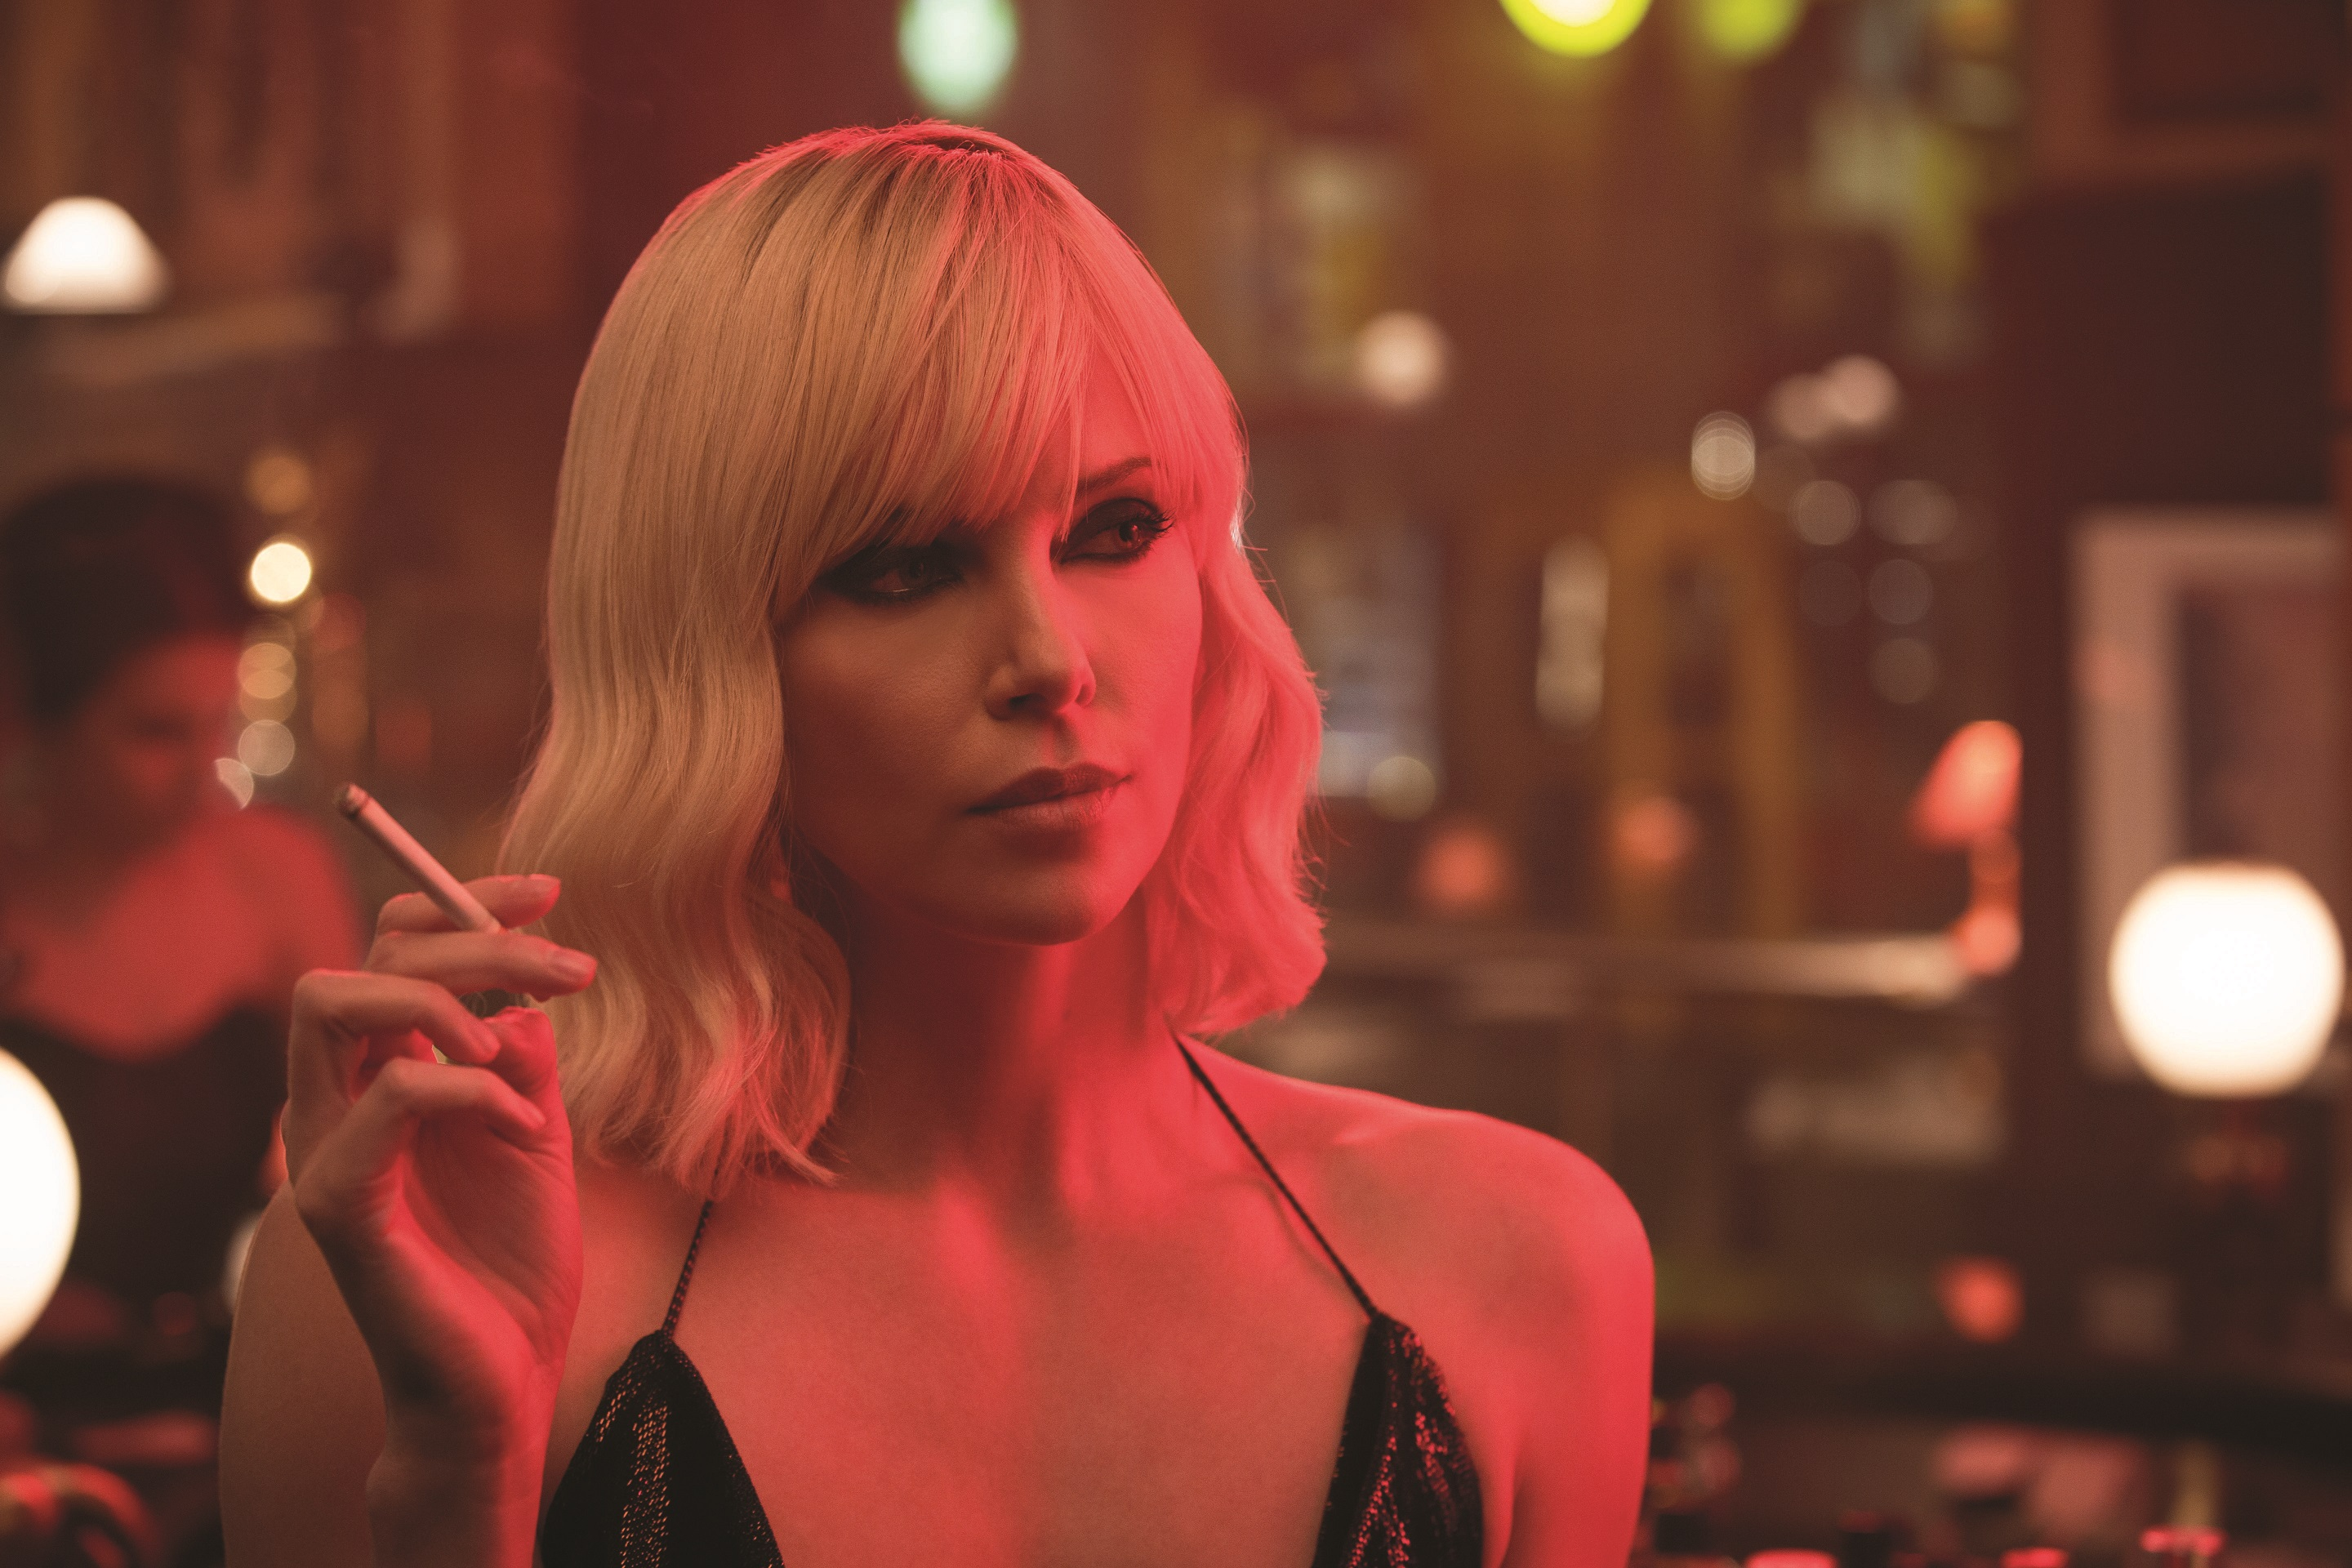 Atomic Blonde: What if James Bond were a Kick-Ass Female? - Solzy at the  Movies